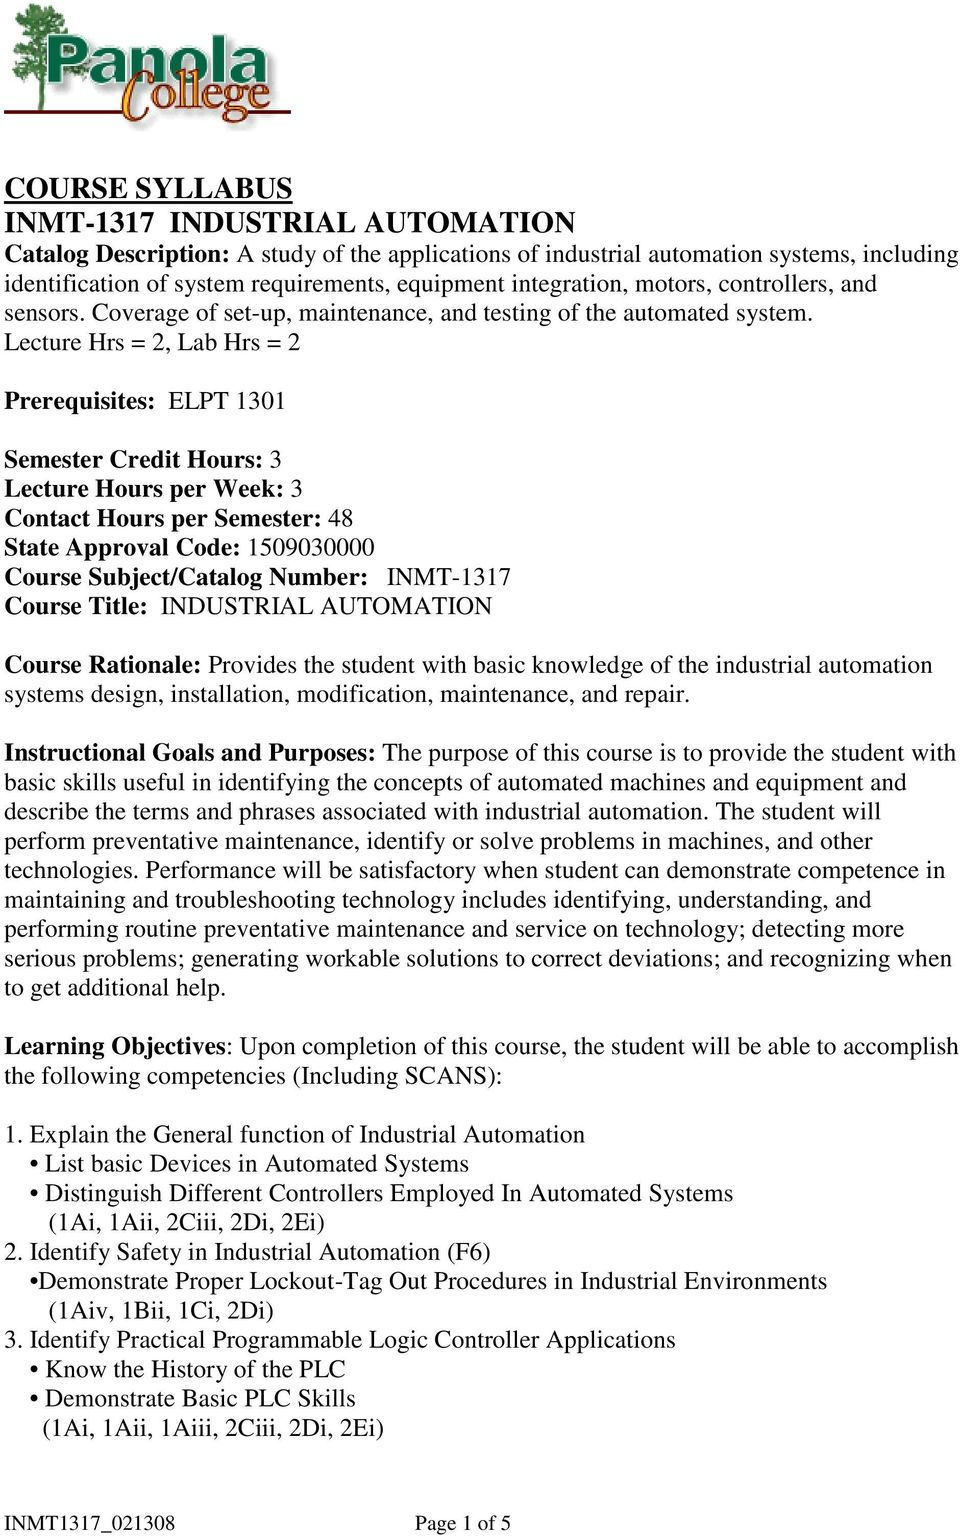 COURSE SYLLABUS INMT-1317 INDUSTRIAL AUTOMATION - PDF